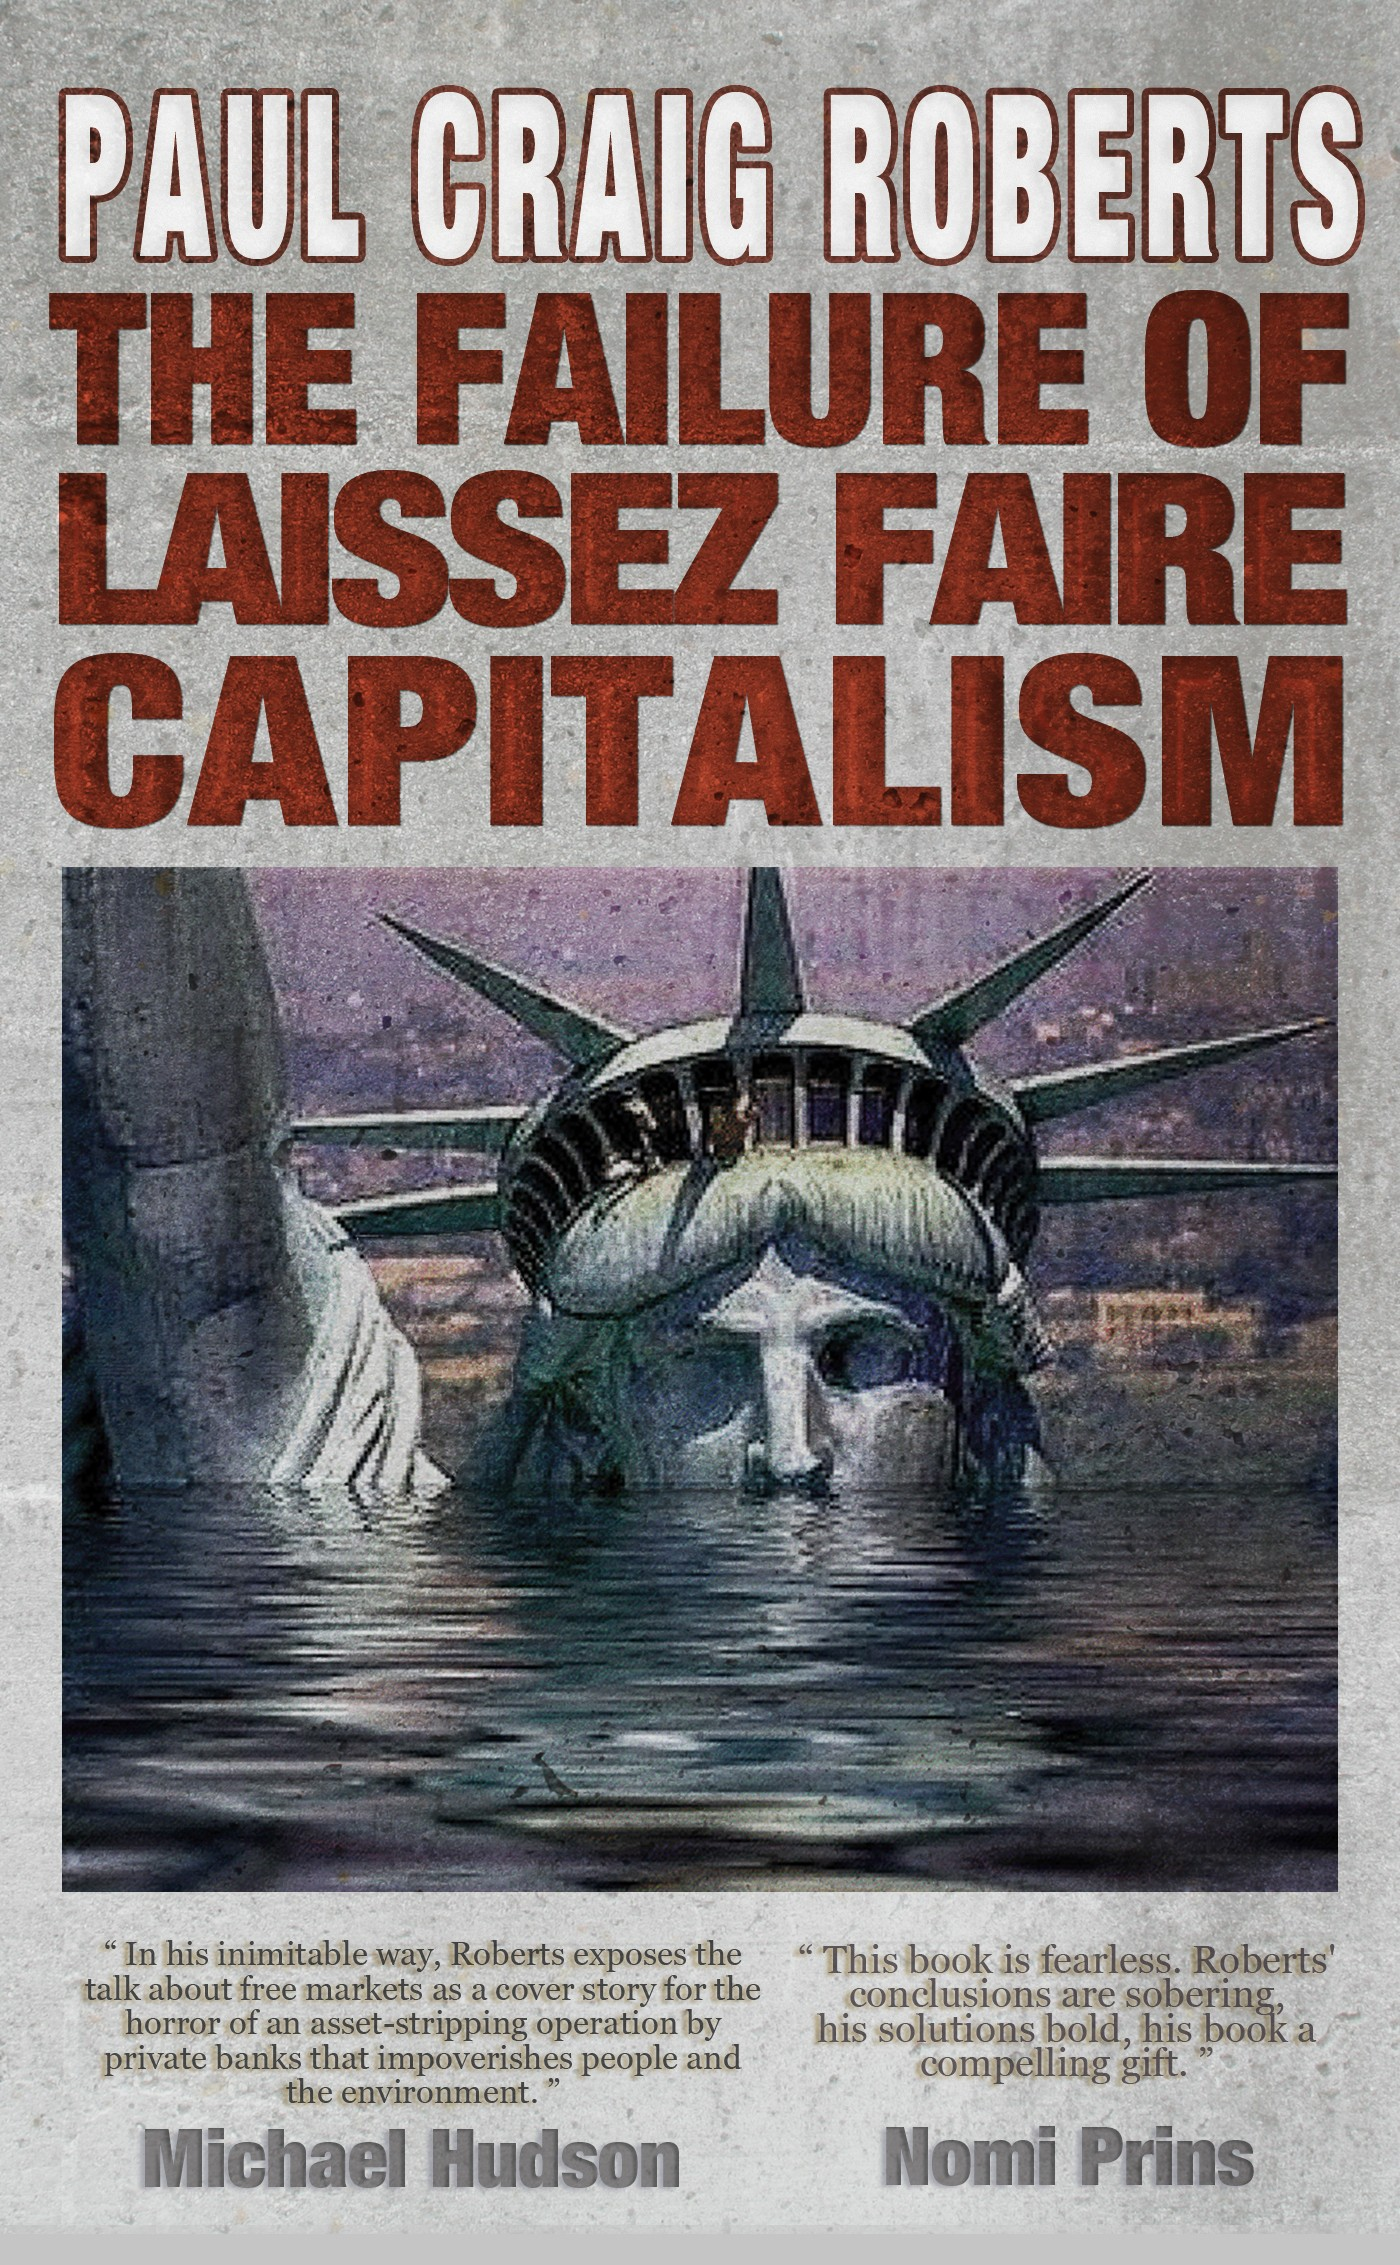 the governmental policy of laissez faire Laissez-faire means leave it alone usually it describes the economic policy of a government that stresses non-interference in business it might also be applied to situations outside economics where governmental interference in personal activities is avoided or when you take a hands off approach.